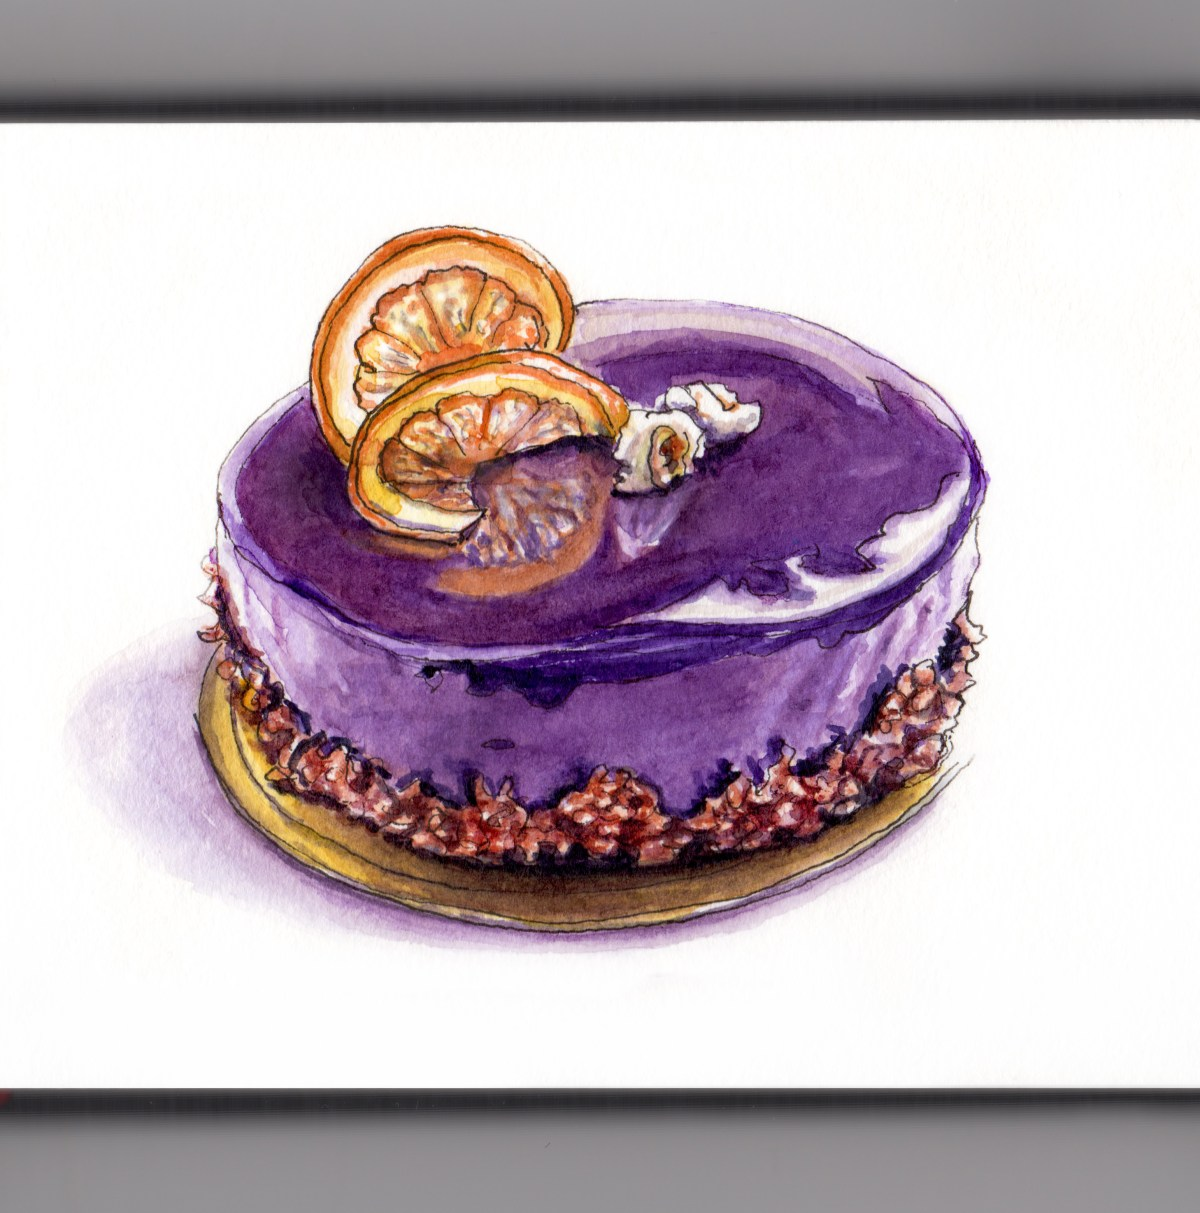 Day 12 - #WorldWatercolorGroup A Shiny Dessert Mirror Cake Watercolor - #doodlewash